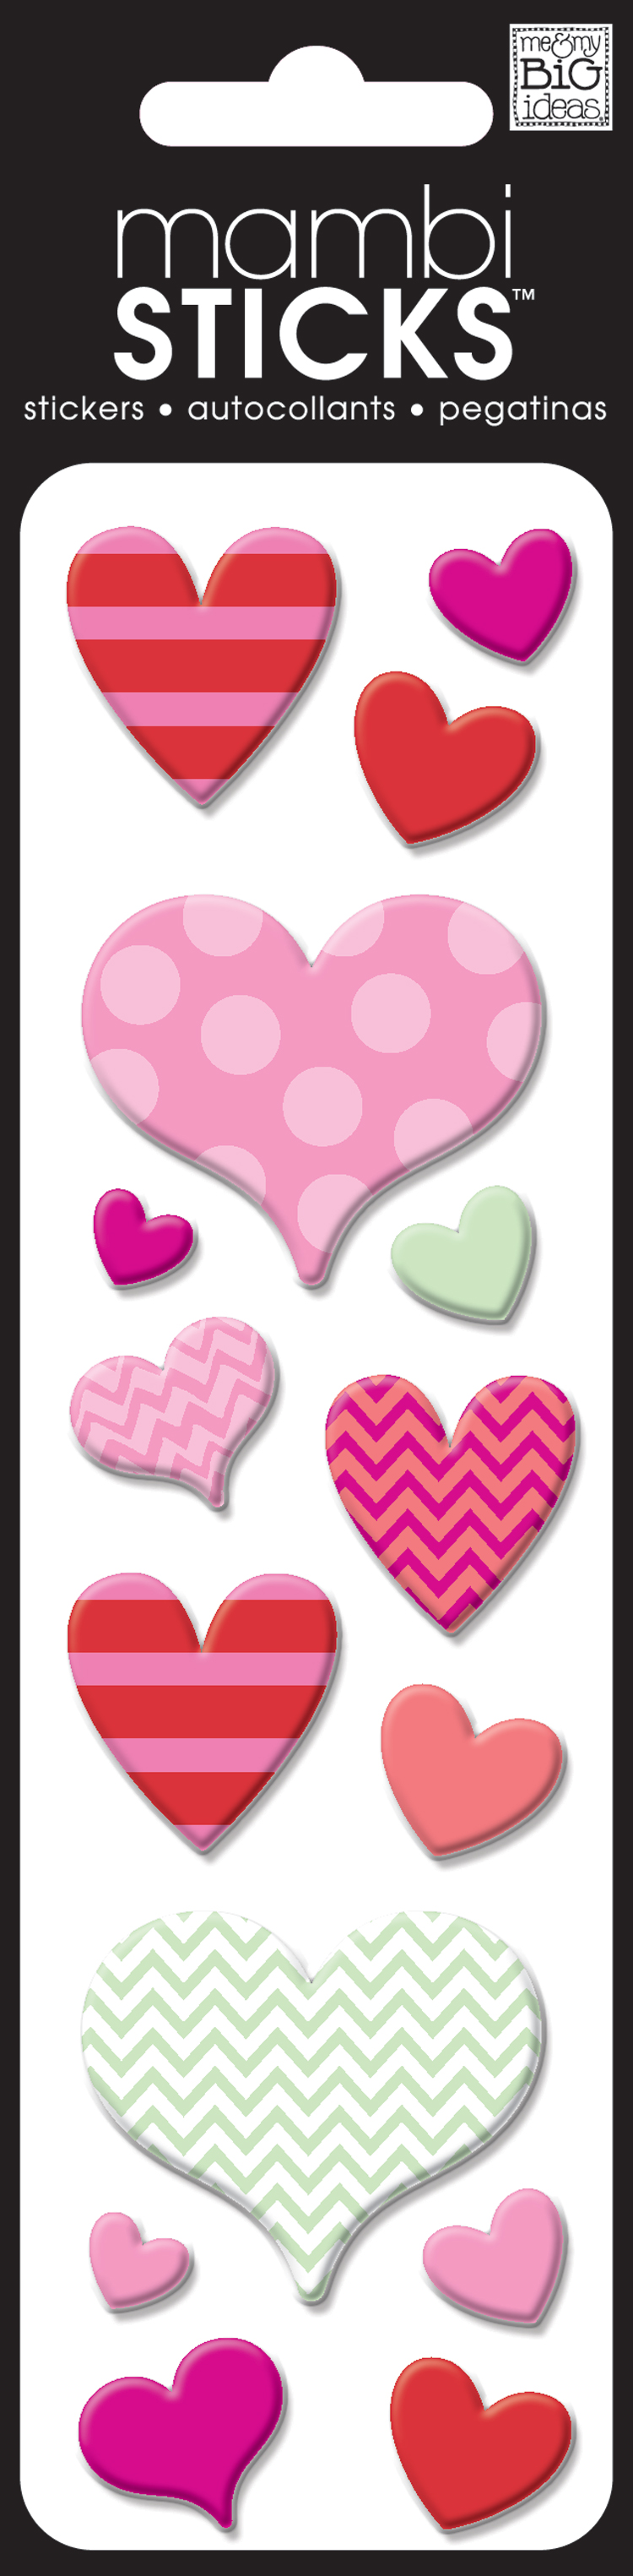 Heart Puffy Stickers - mambiSTICKS